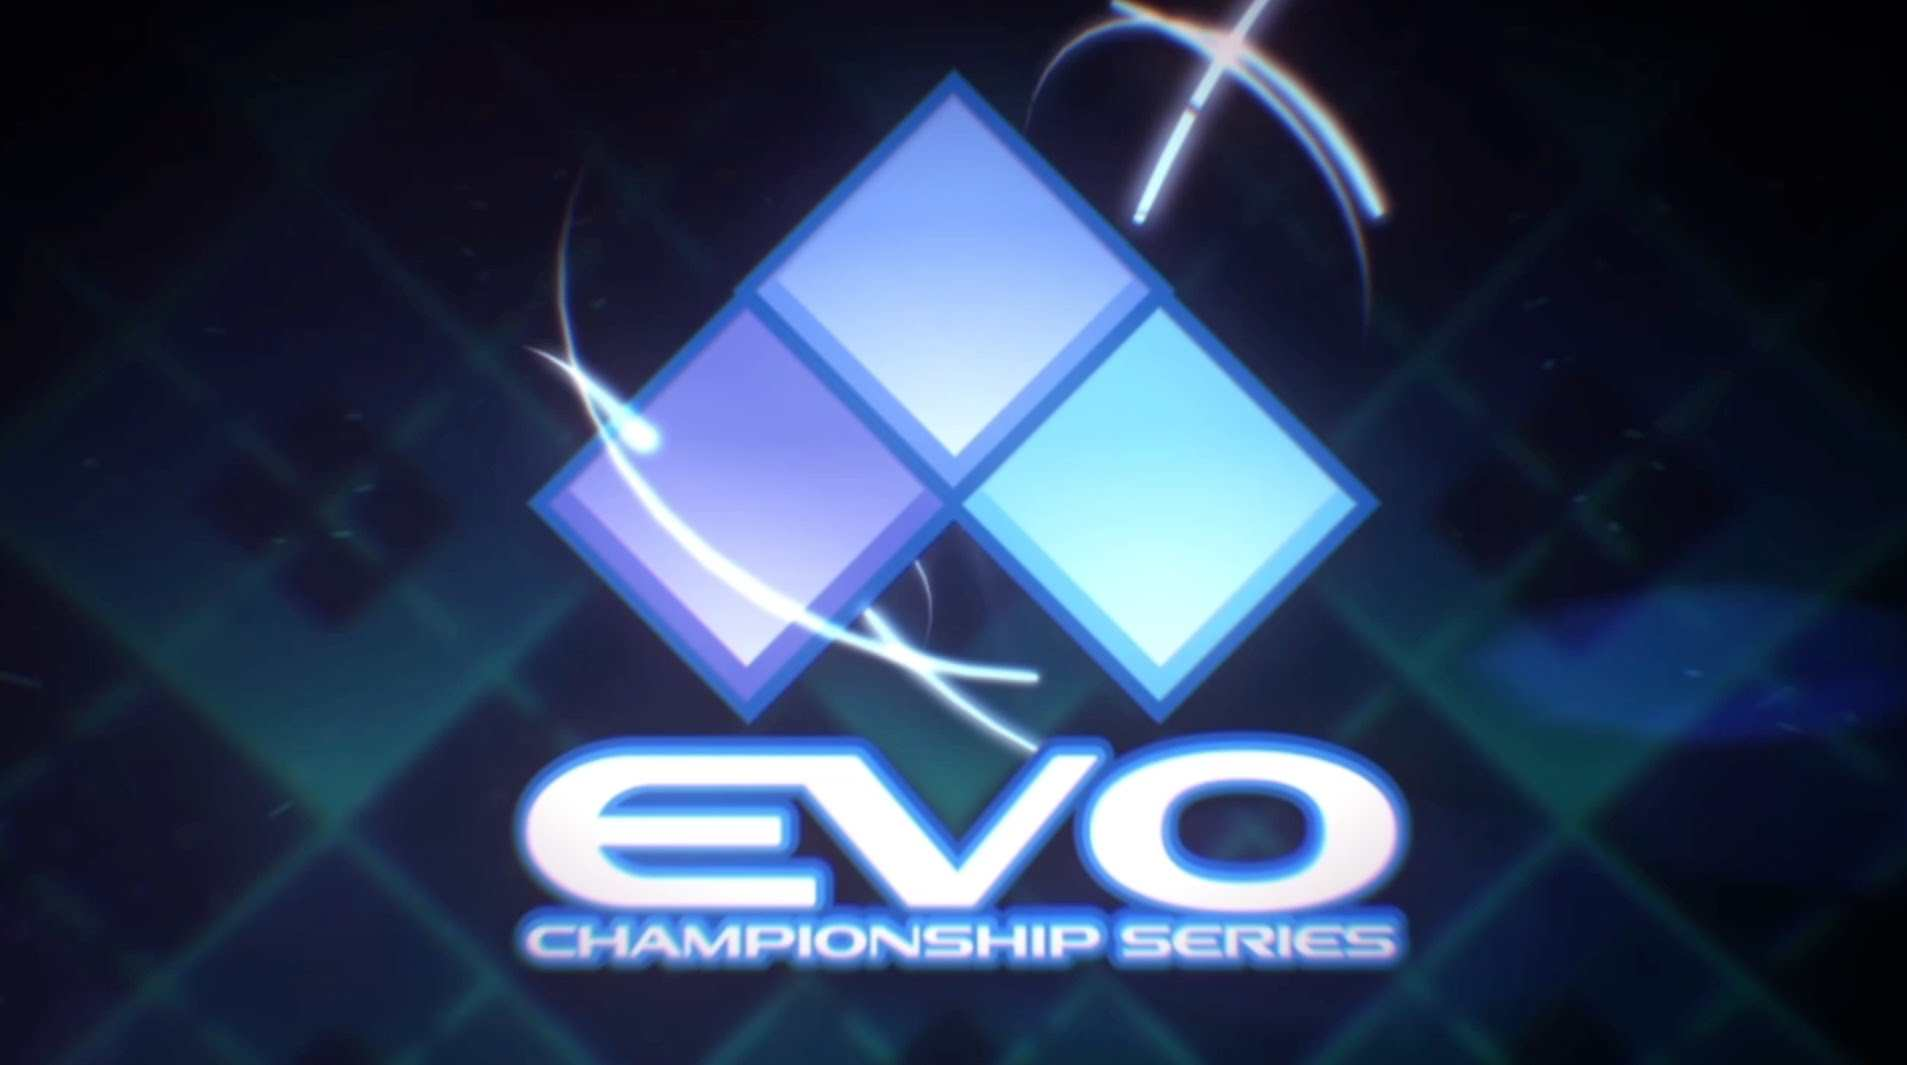 Evo 2017 Logo >> The Problems With Evo 2016 And How It Can Do Better Next Year